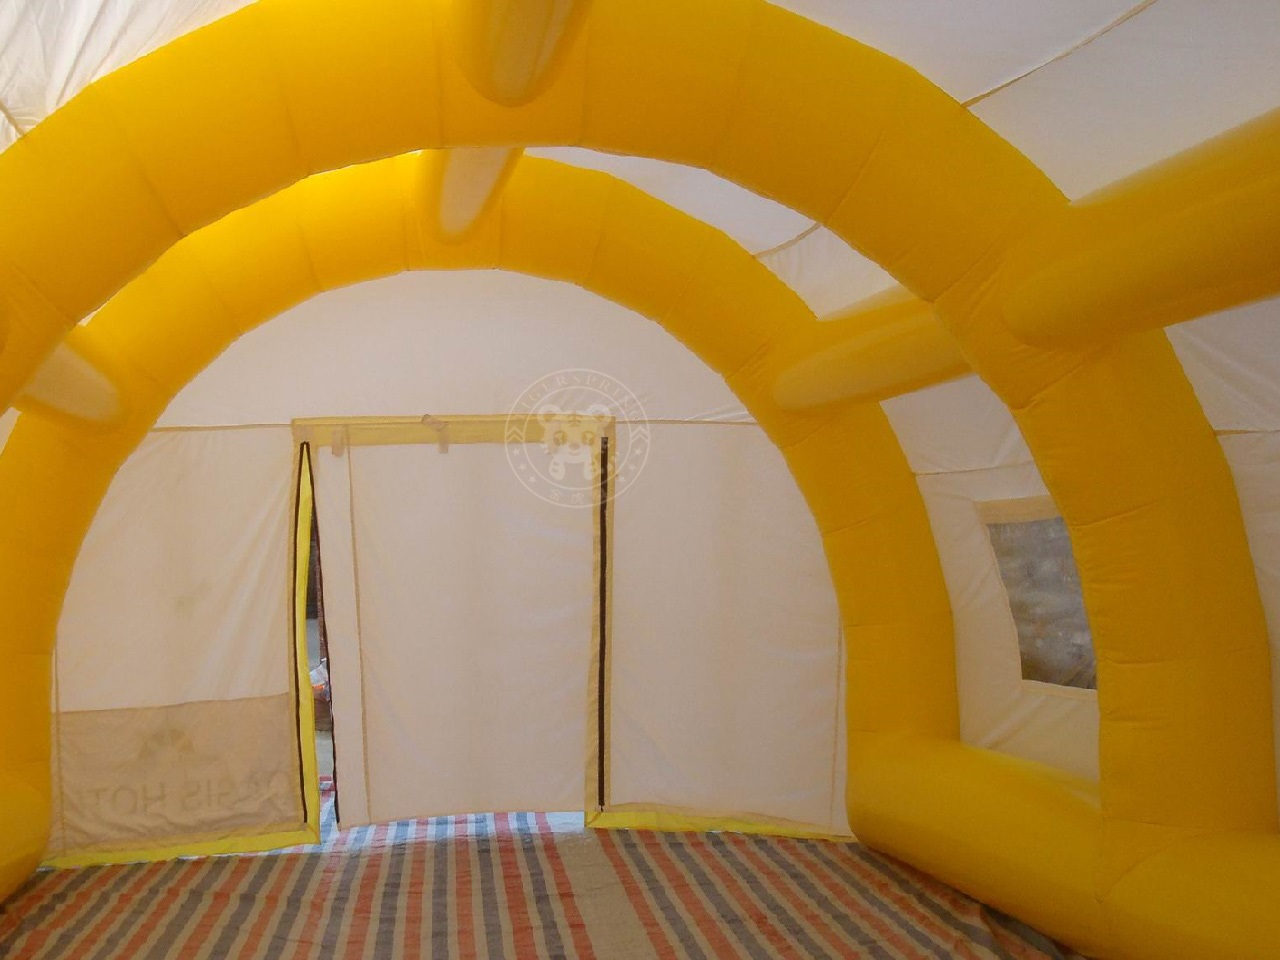 inflatable archway tent outdoor activity inflatable tent